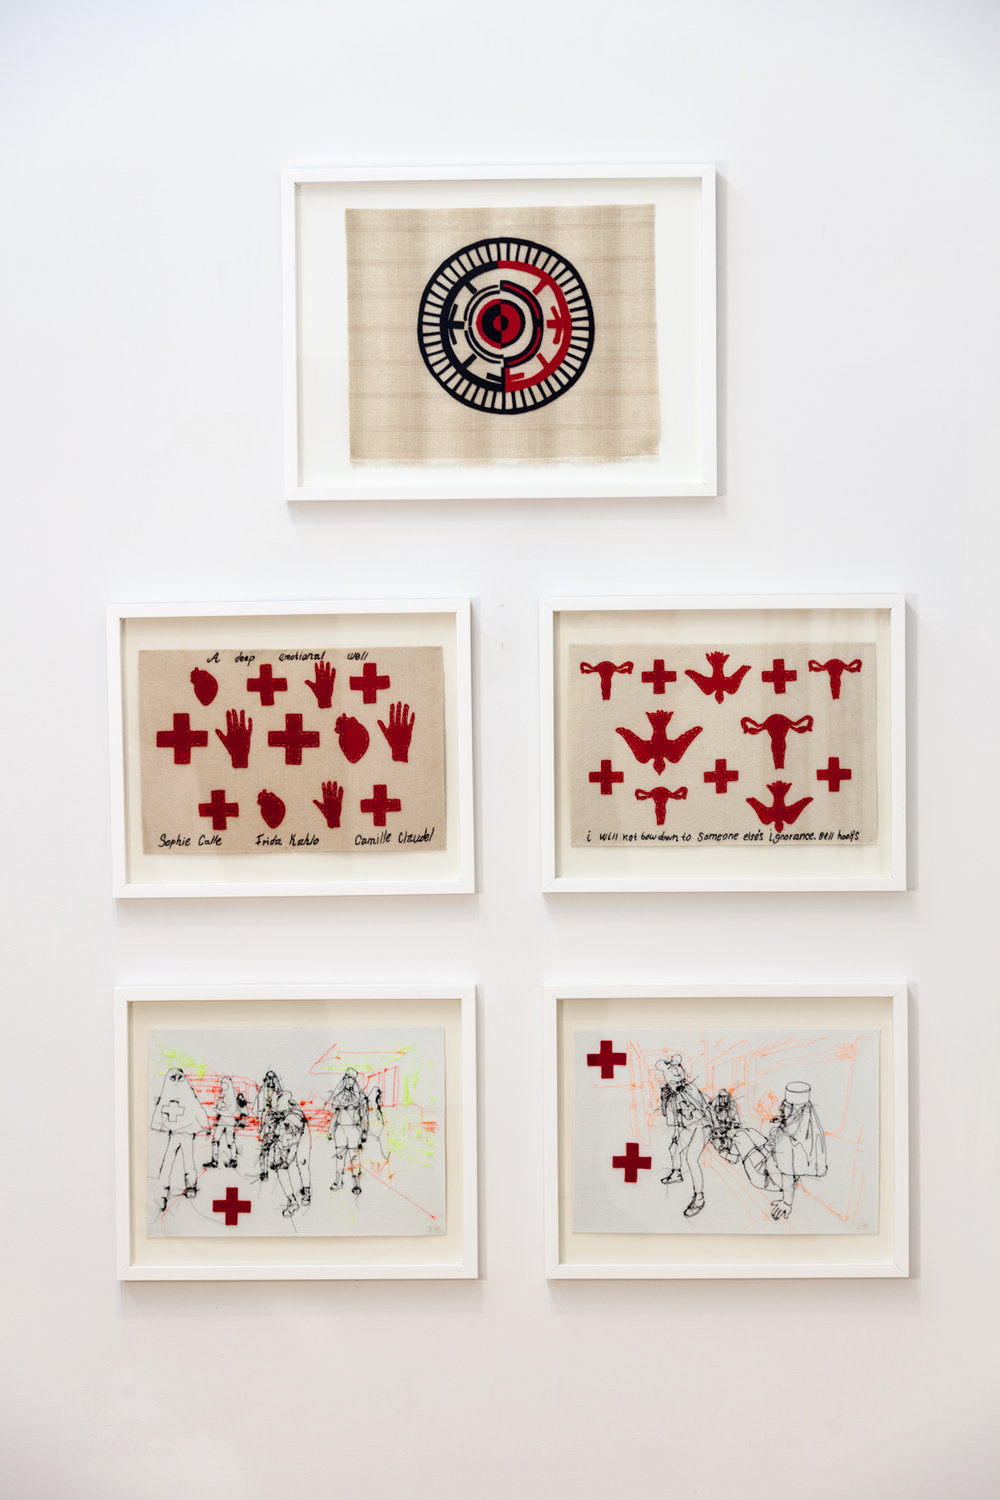 installation: Felt and thread on paper